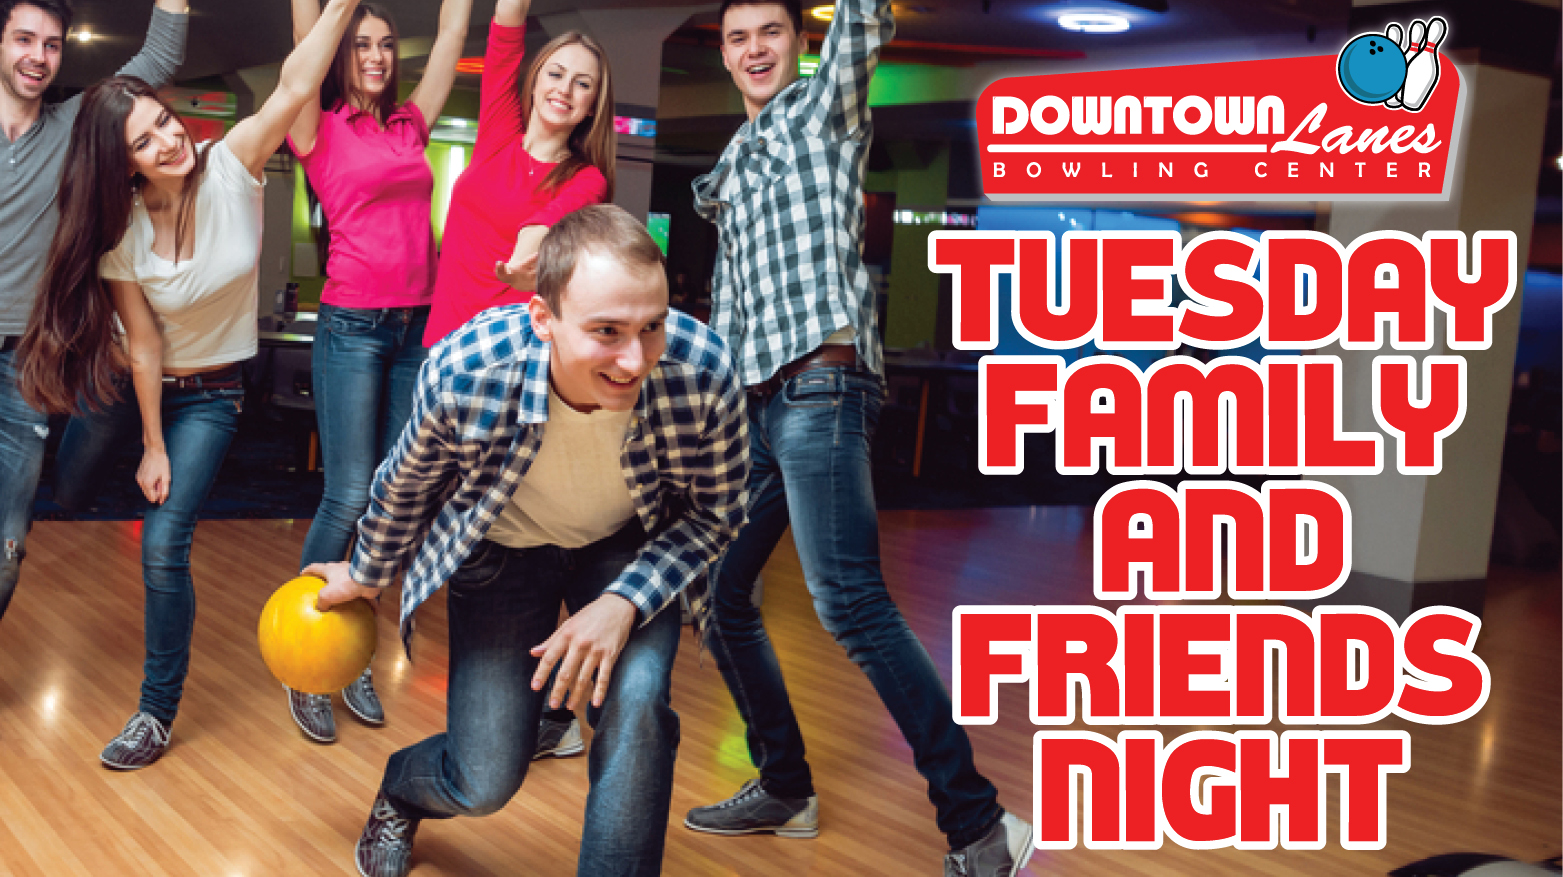 Tuesday Family and Friends Night